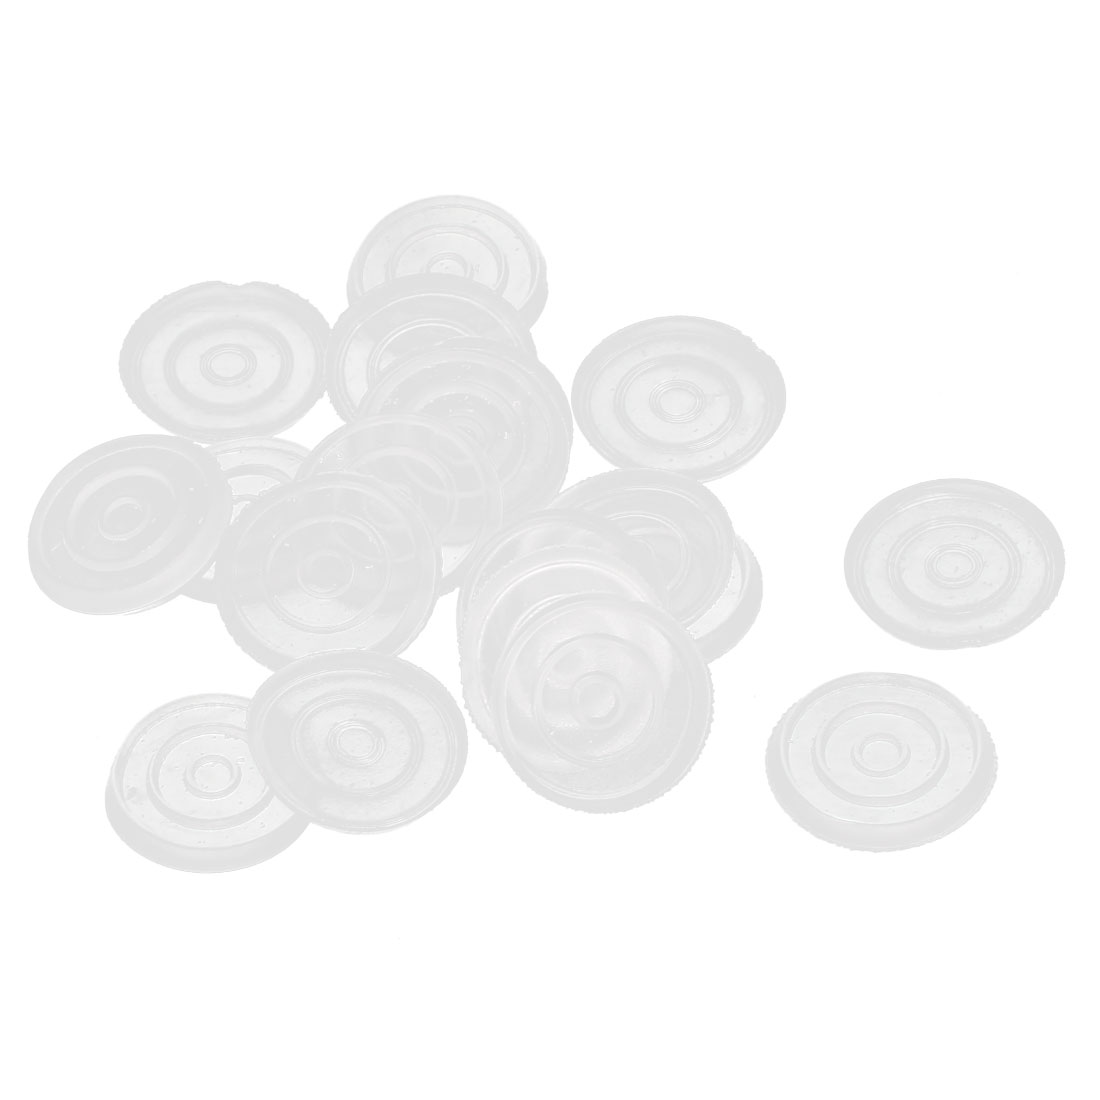 18mm Dia Round Clear Plastic Non-slip Glass Table Dash Mat Pad Cushion 20Pcs